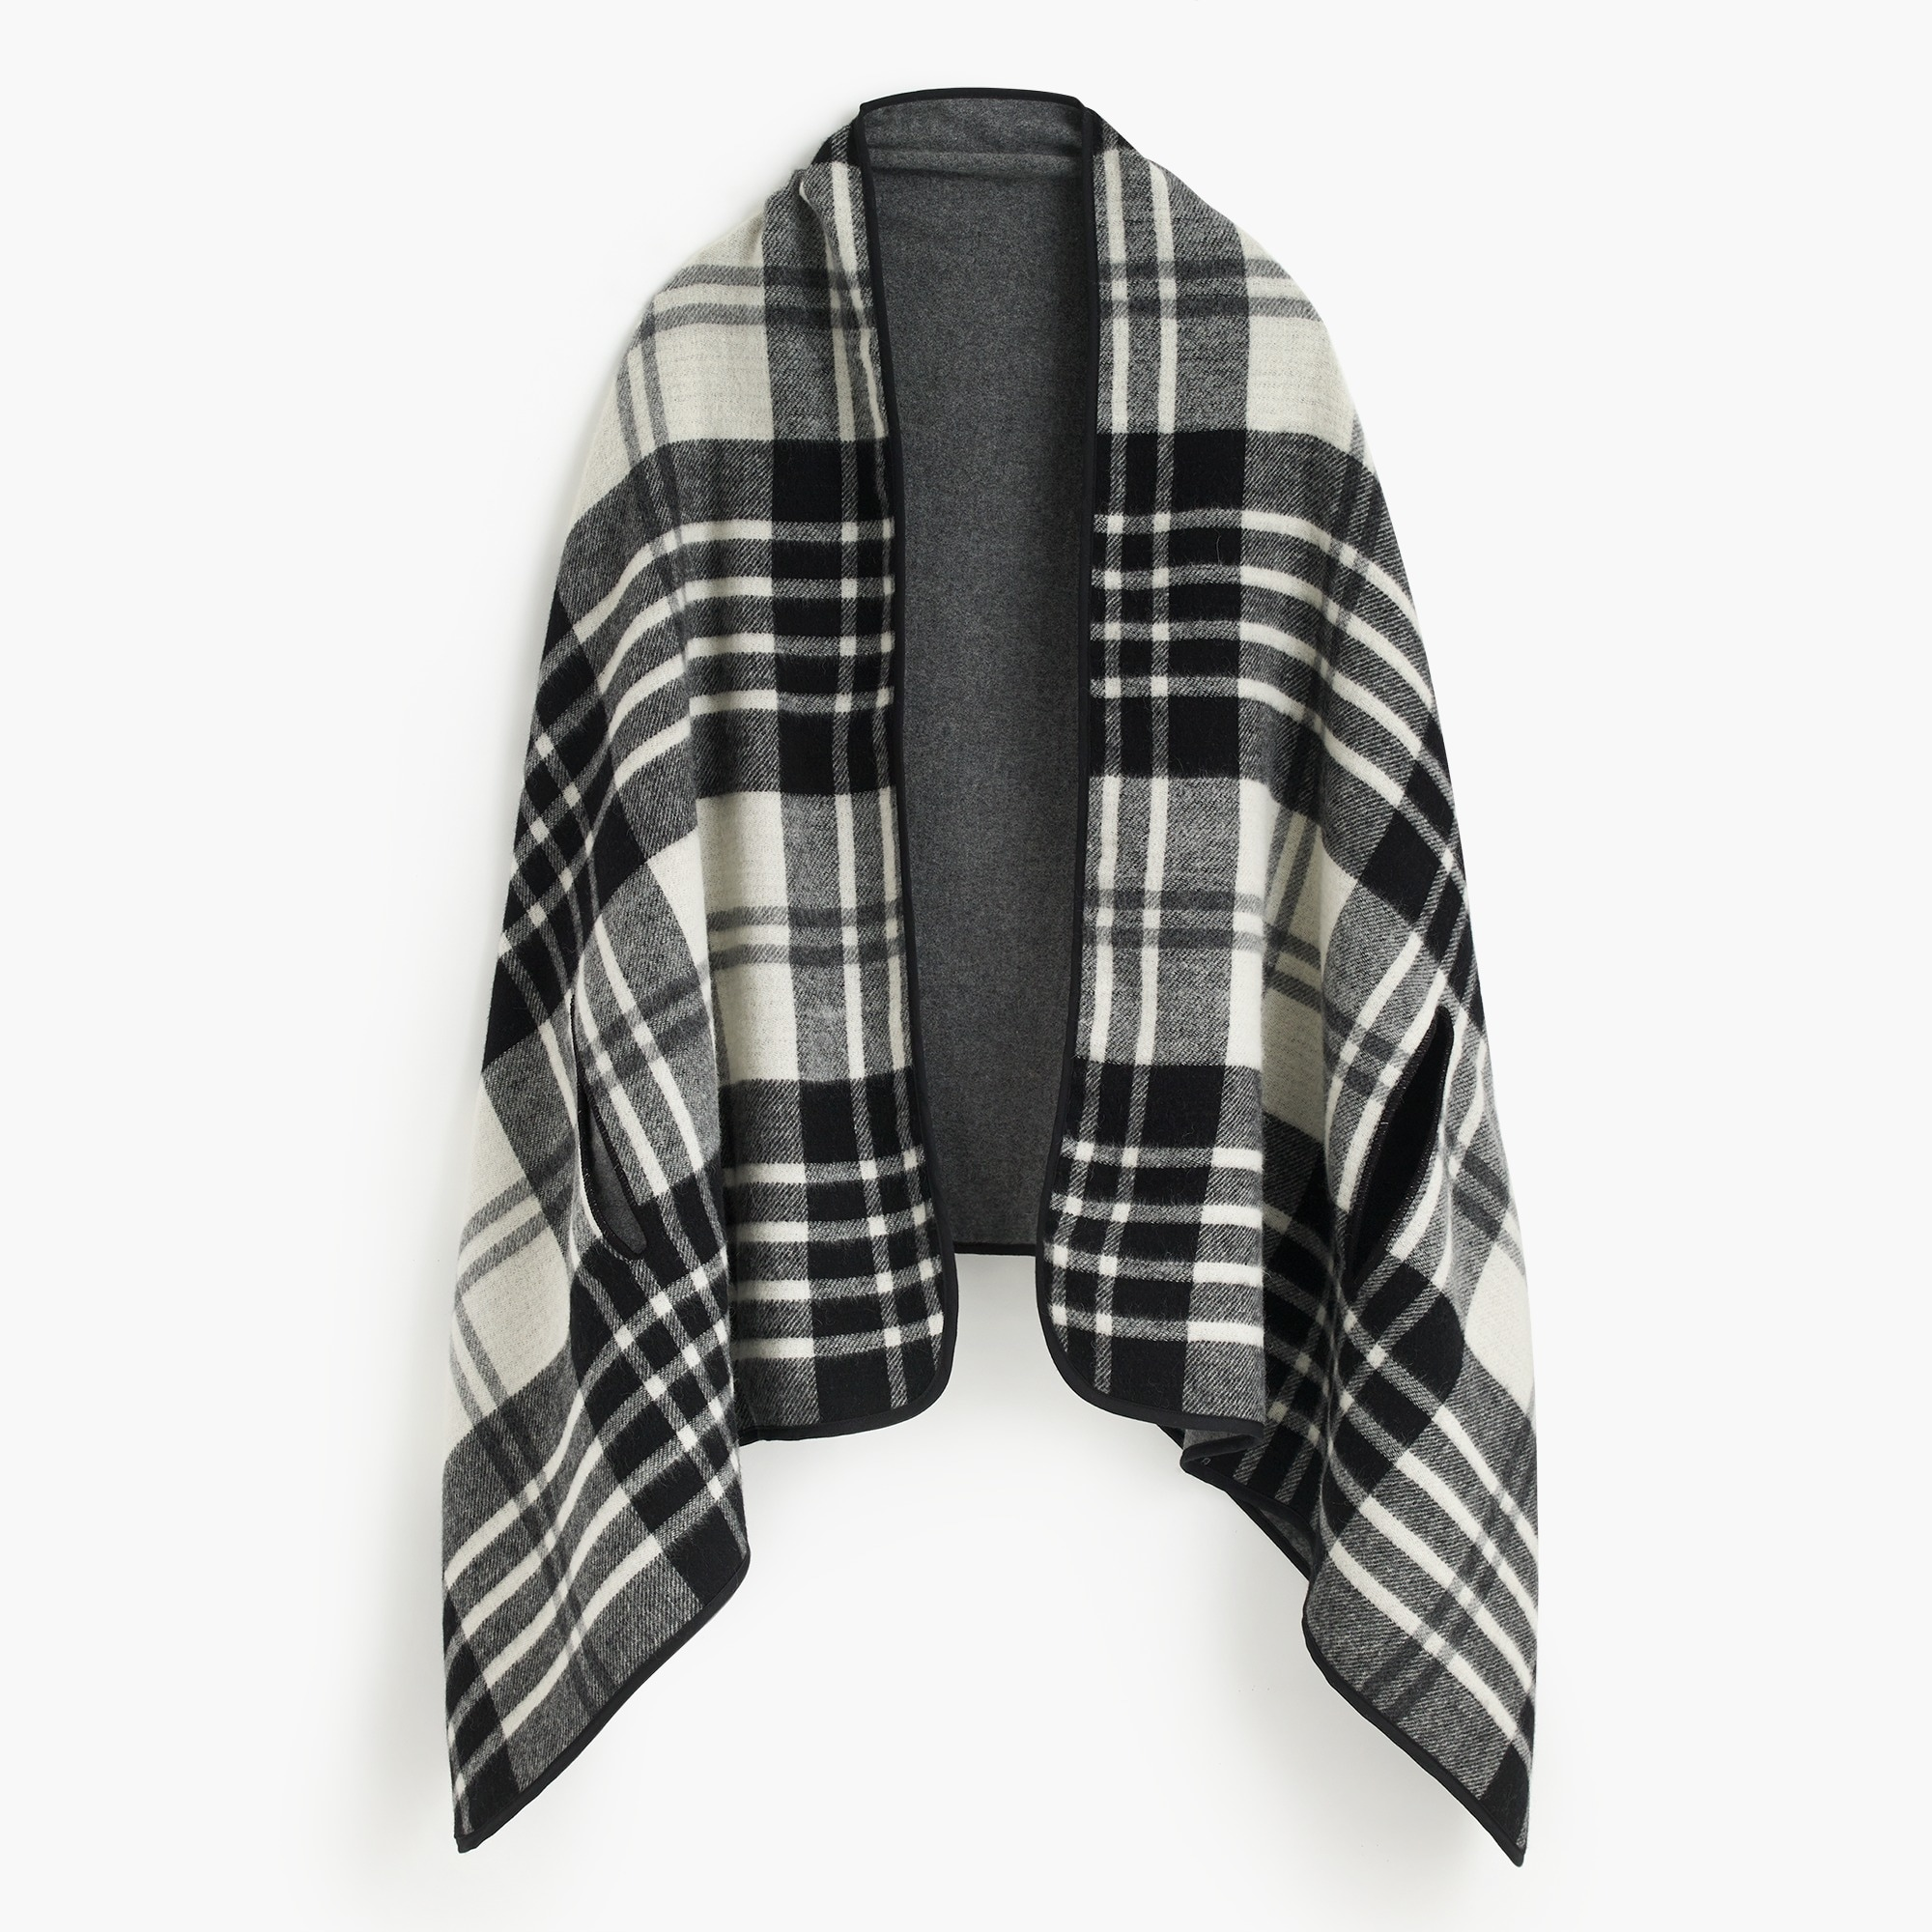 Image 1 for Plaid cape scarf